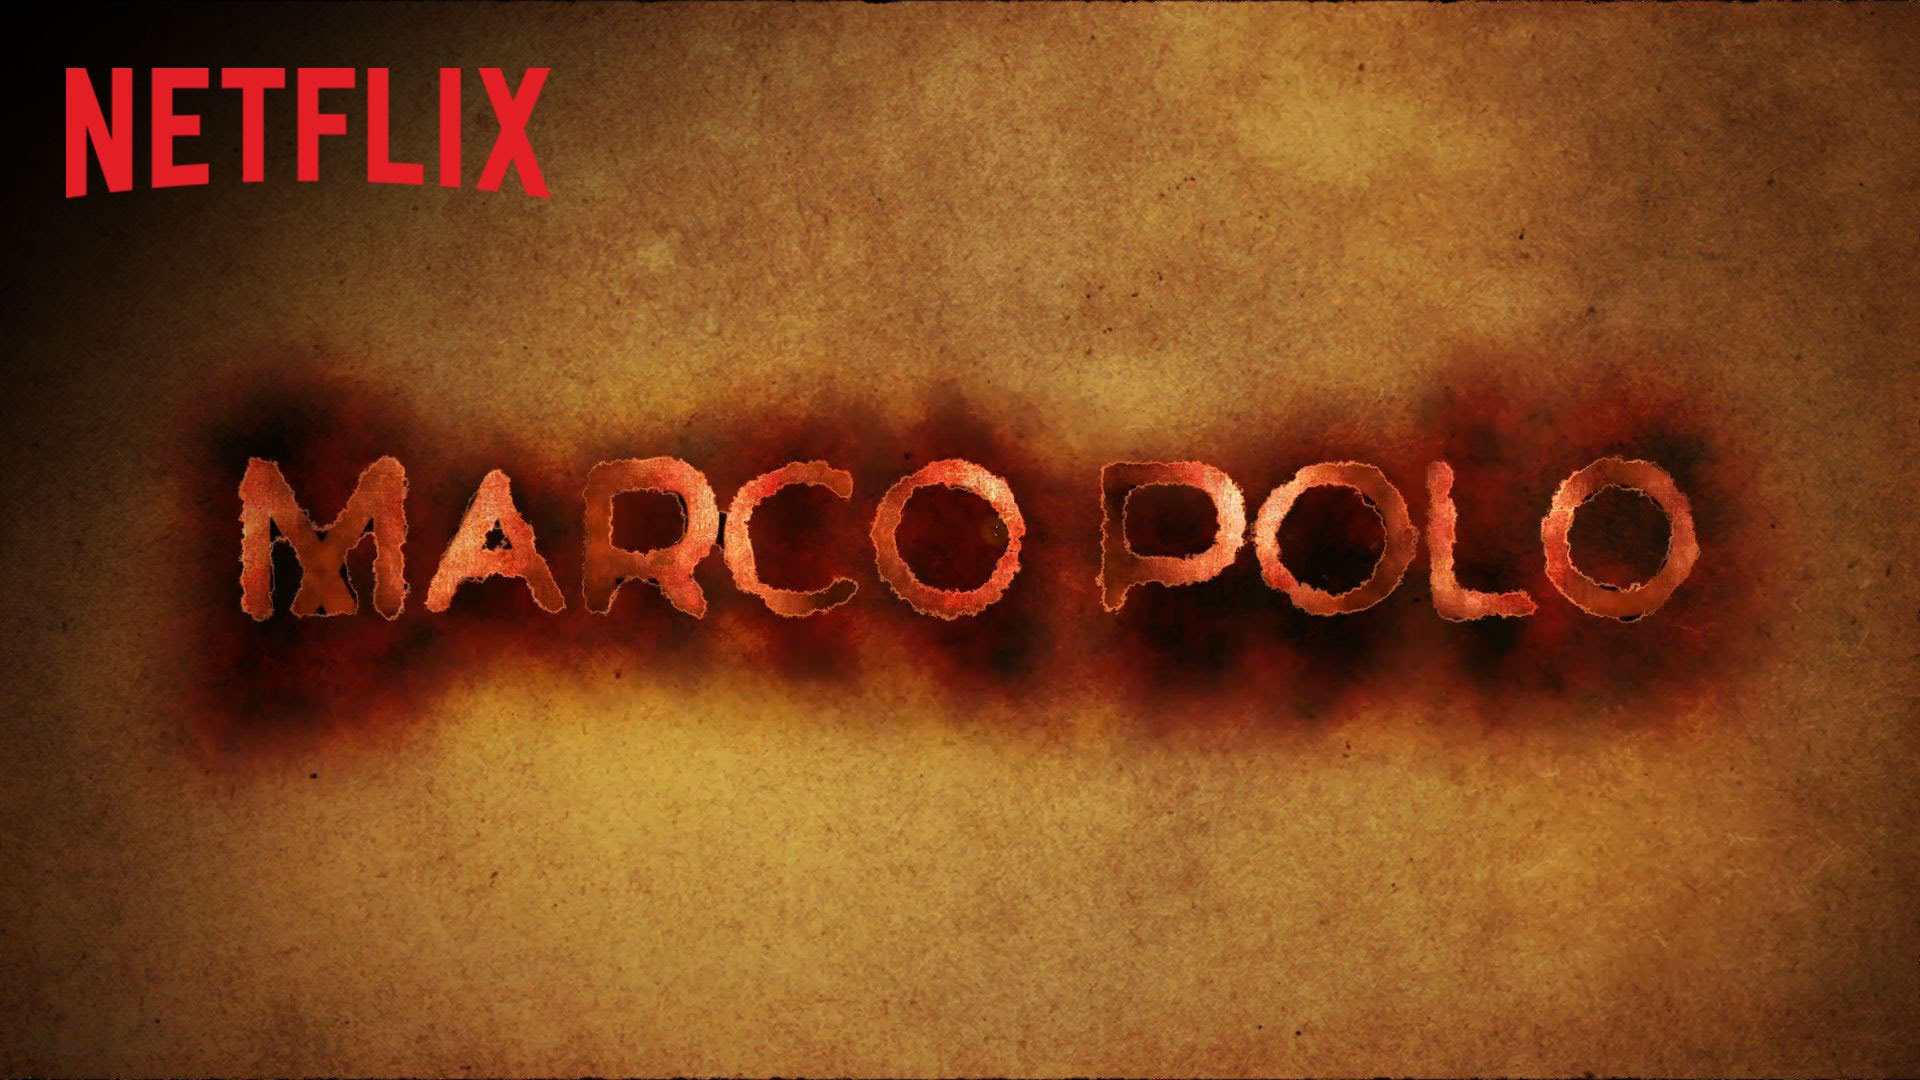 Marco Polo - Season 2 - Date Announcement